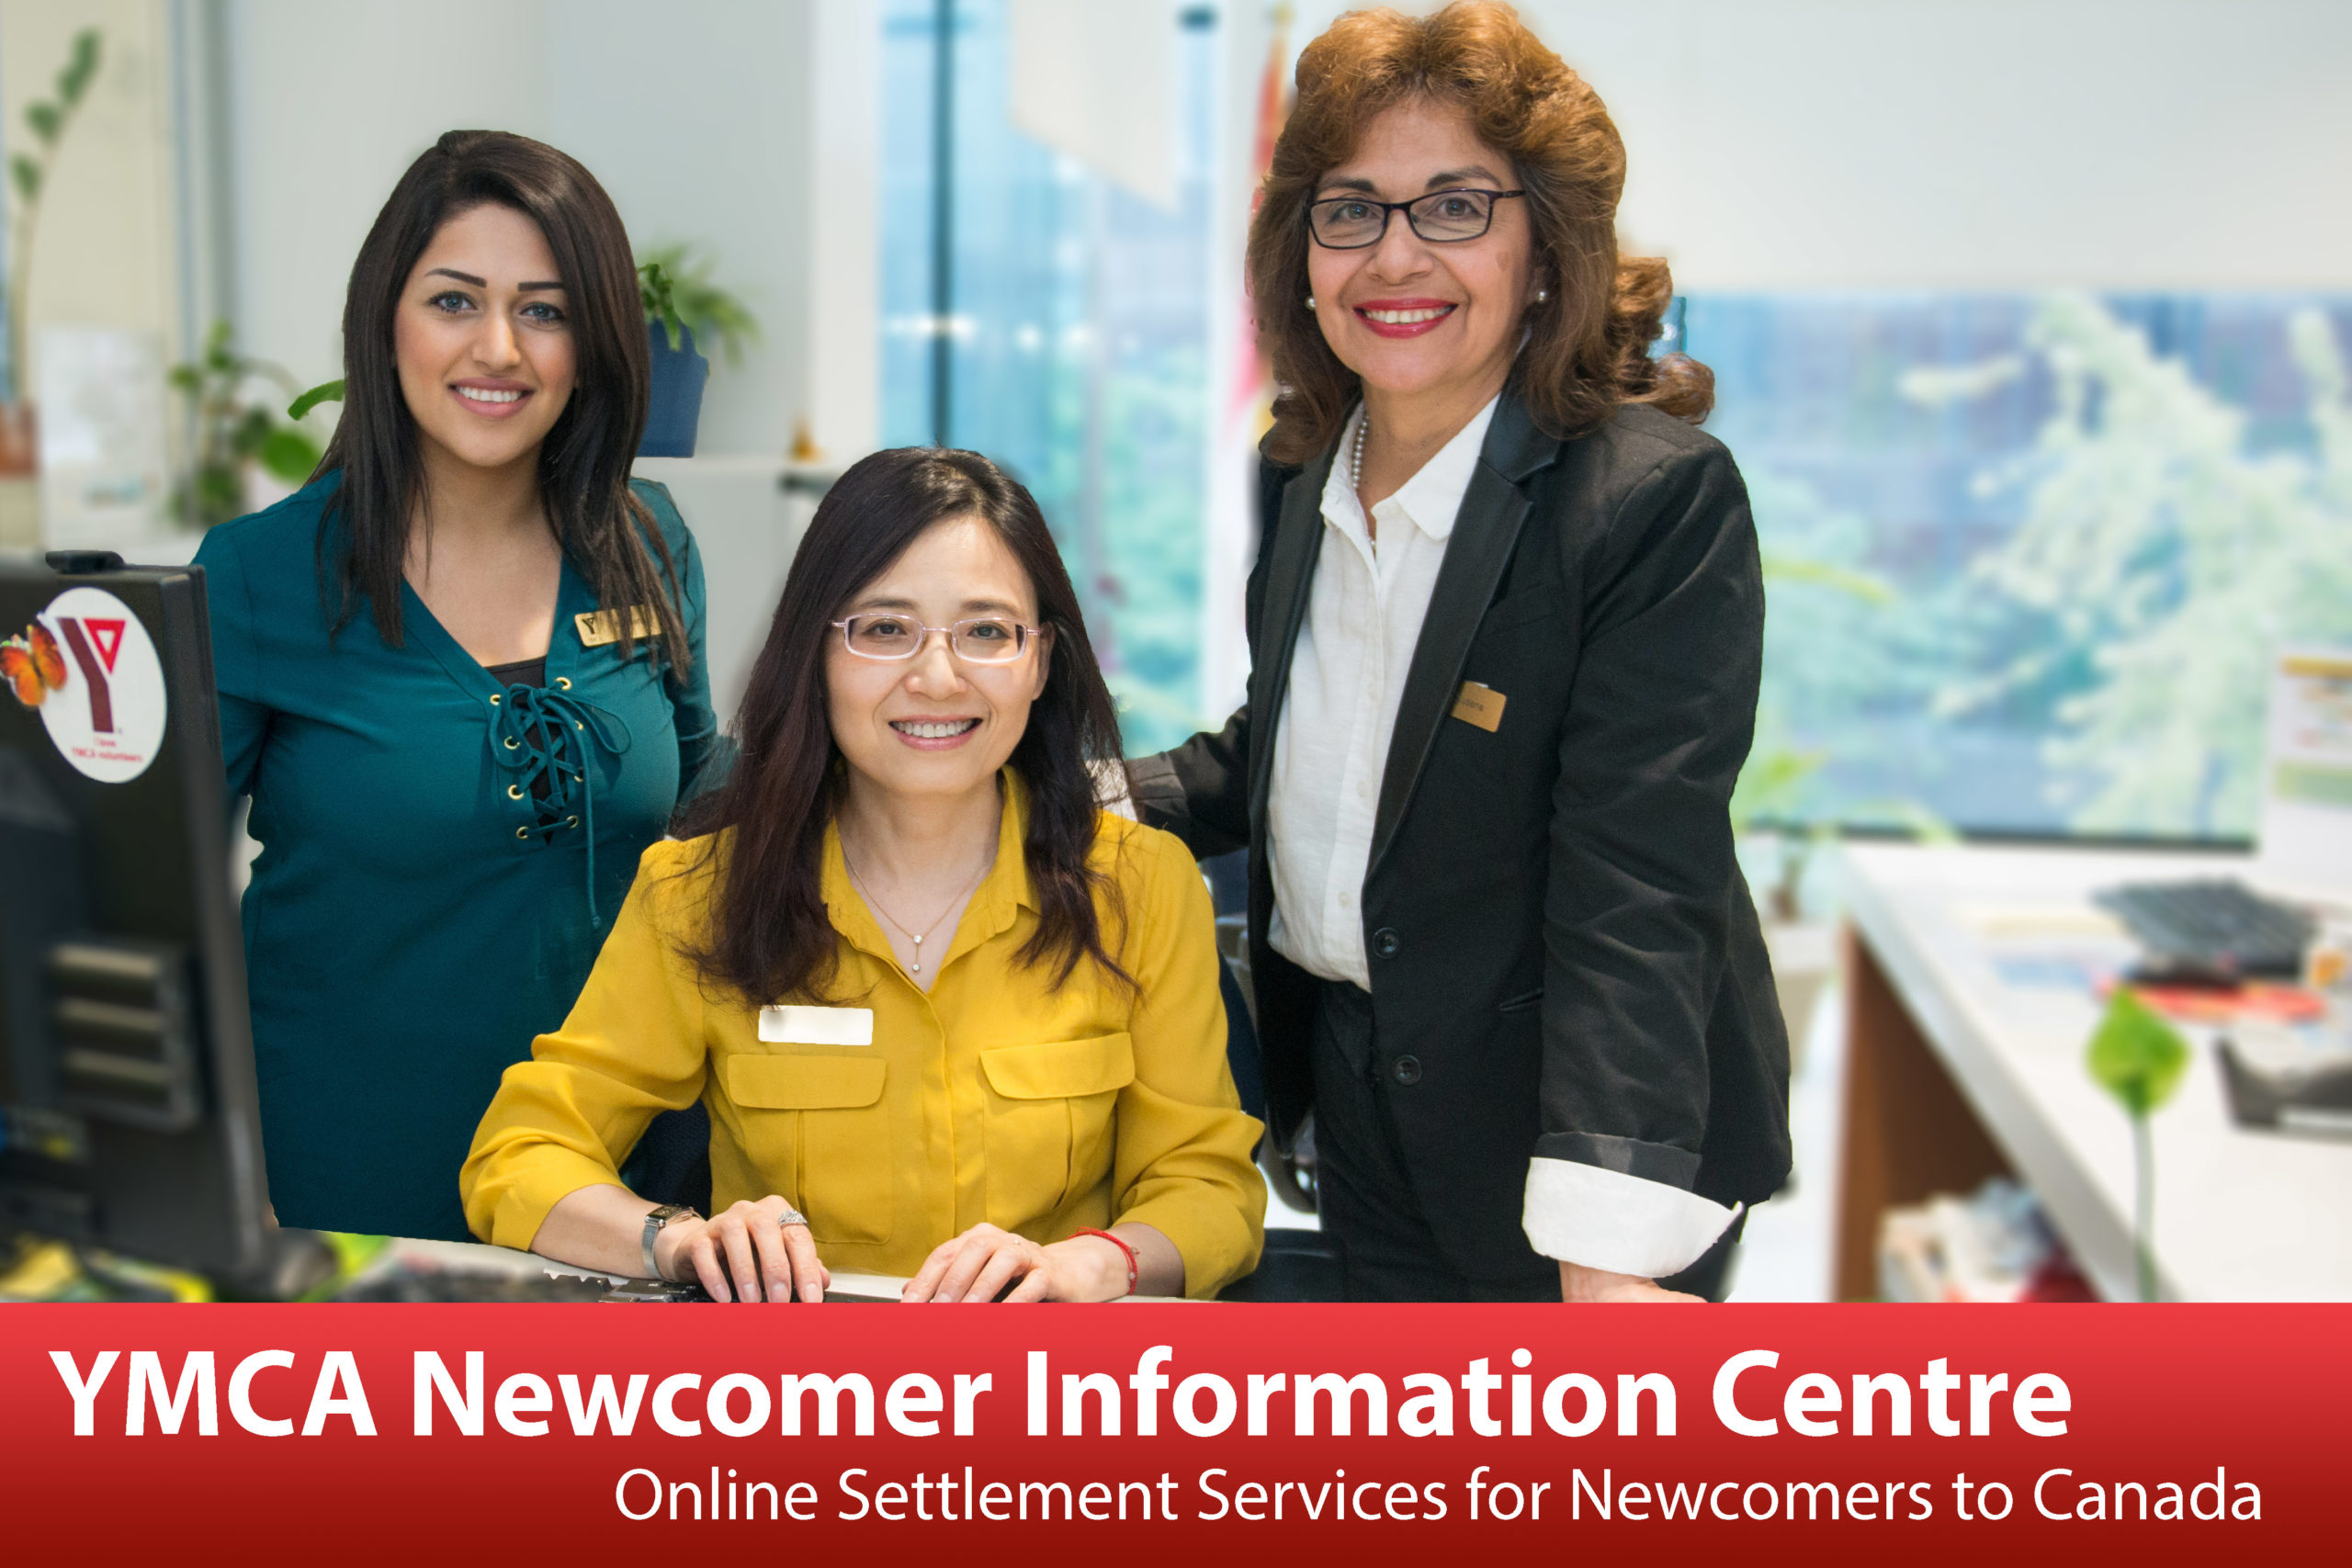 YMCA Newcomer Information Centre